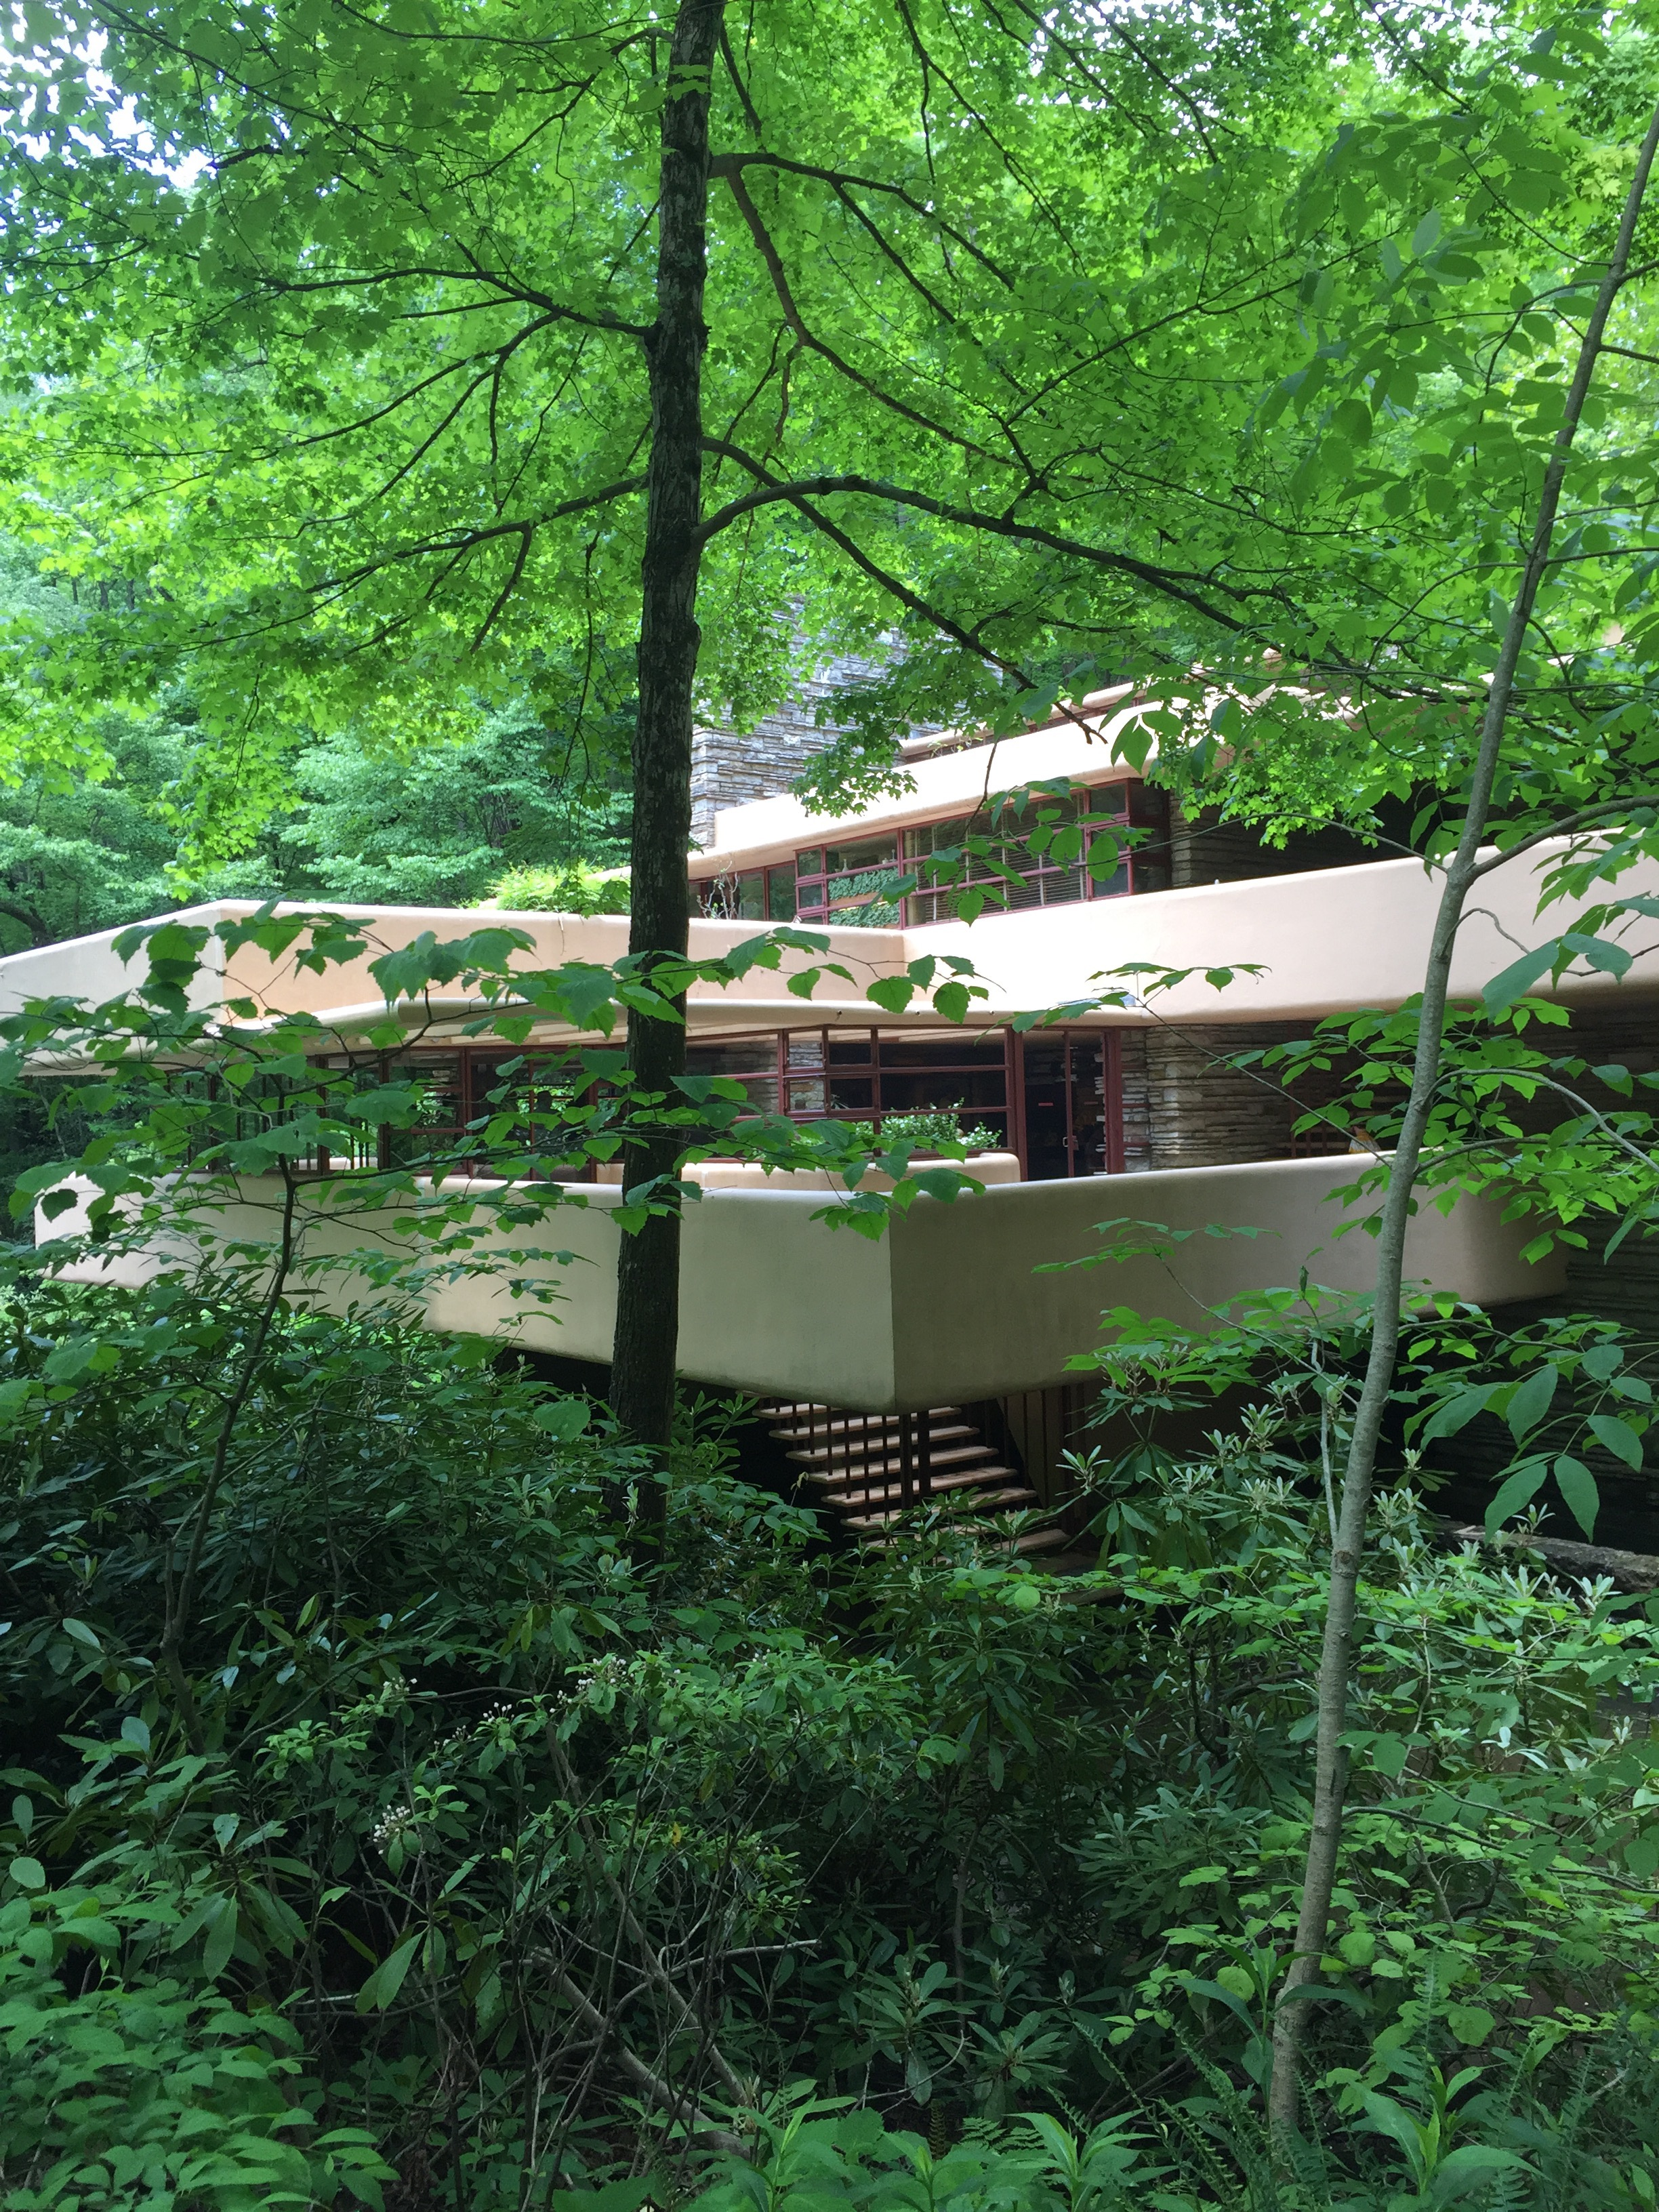 Each bedroom and the living room has its own private terrace, adding to the blending of nature and building. Wright used natural paint colors for the cement and the steel to keep with oneness with nature.